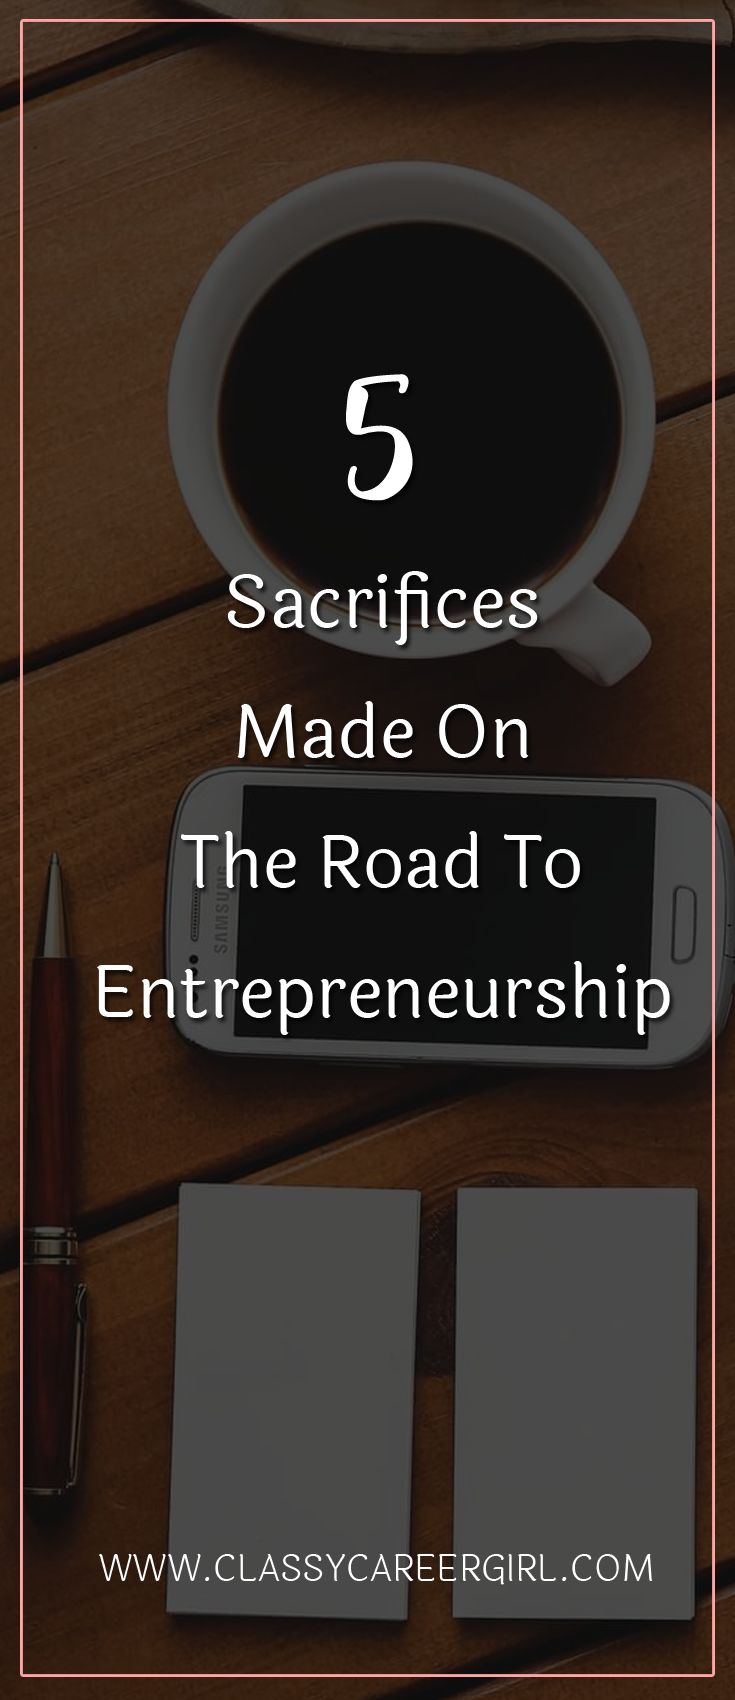 5 Sacrifices Made On The Road To